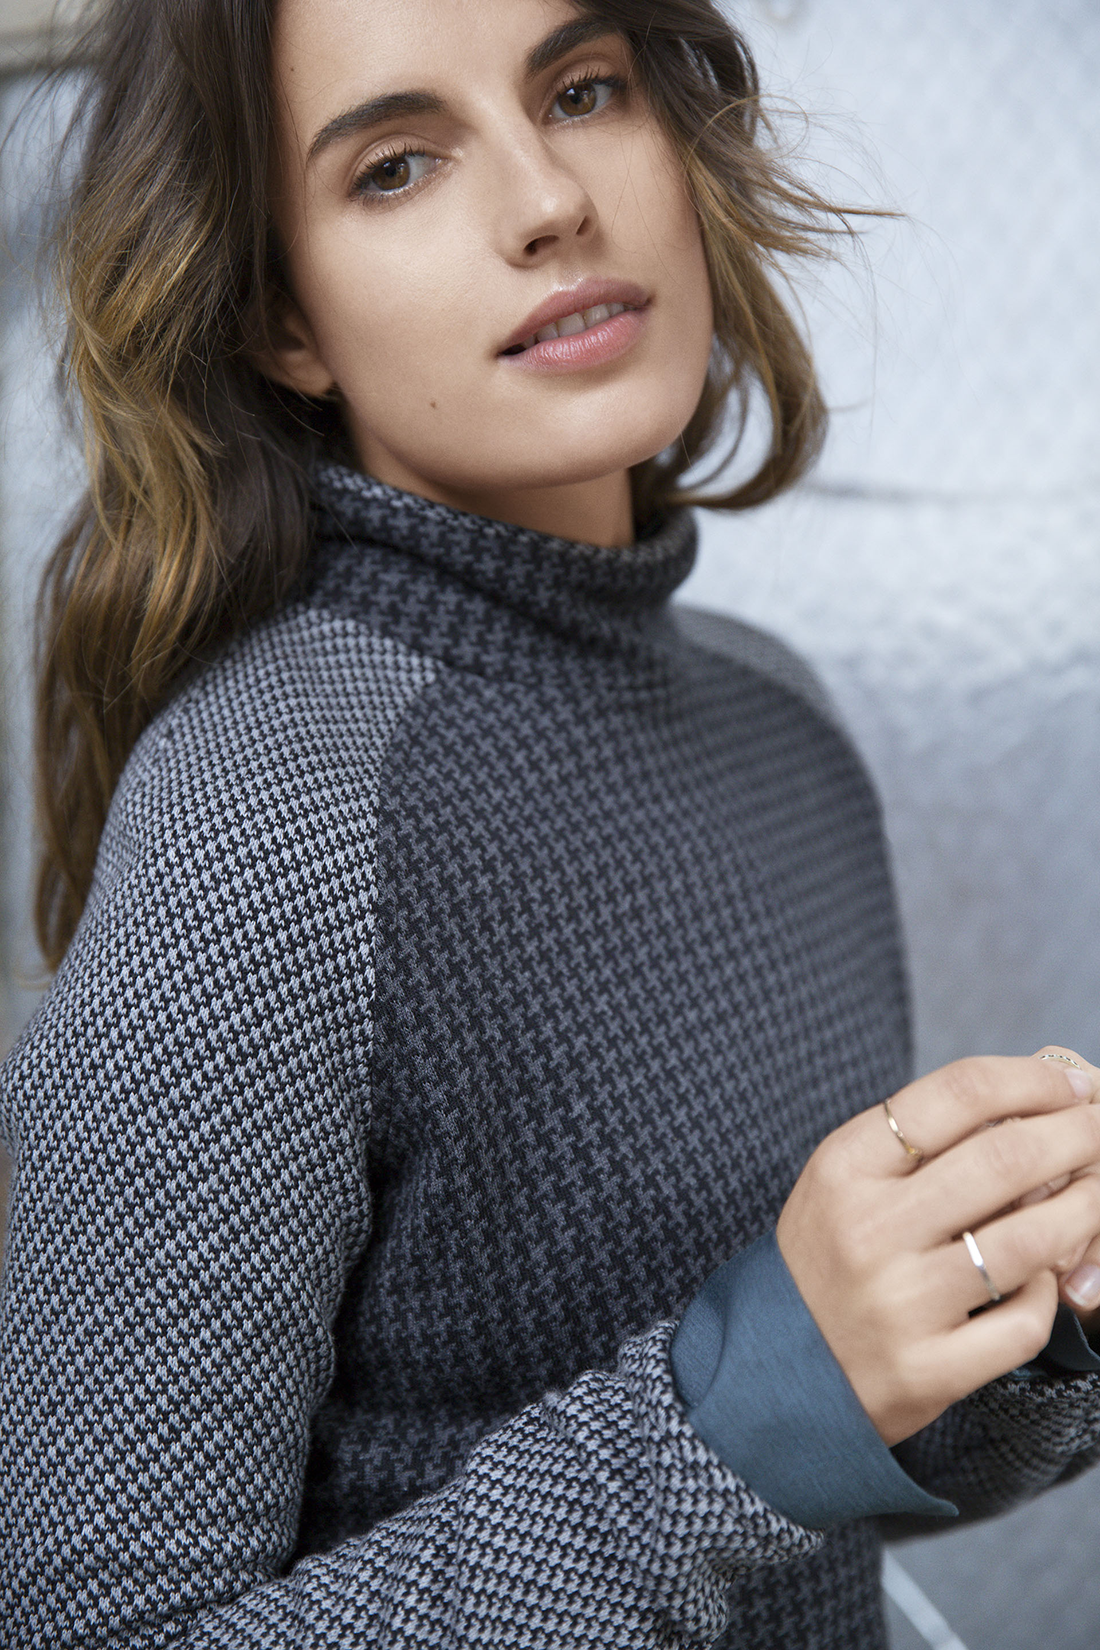 ac7b521e30ed7a Patterned & Polished The Lou & Grey Houndstooth Popover | Sweater ...